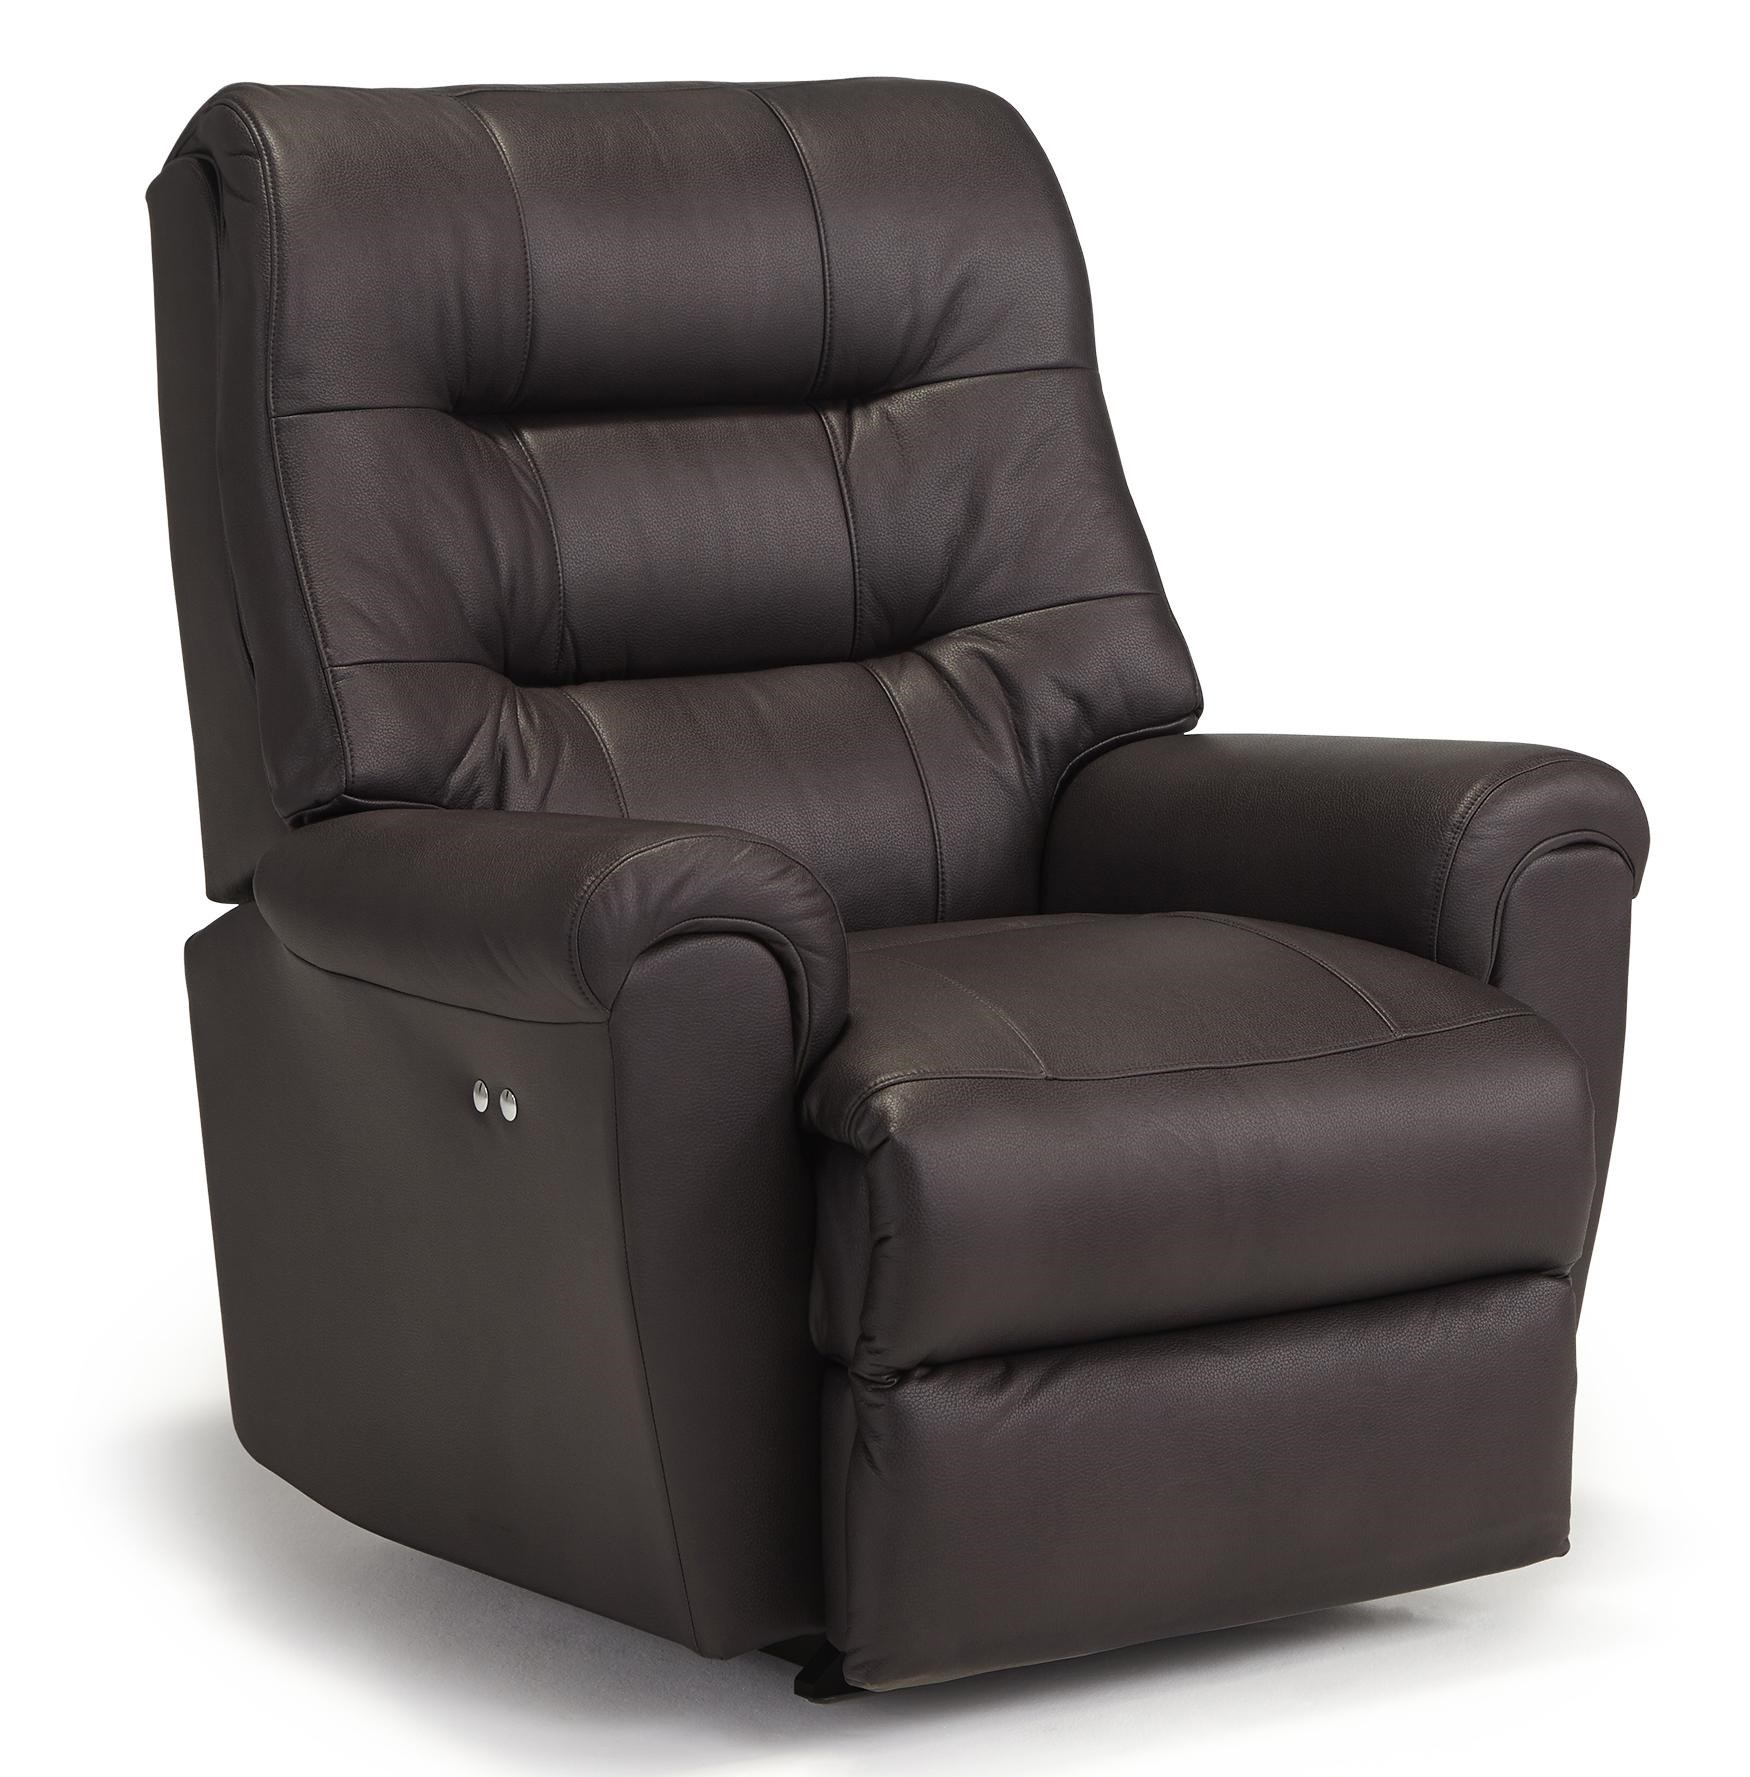 Mattress Gainesville Best Home Furnishings Recliners - Medium Langston Swivel ...